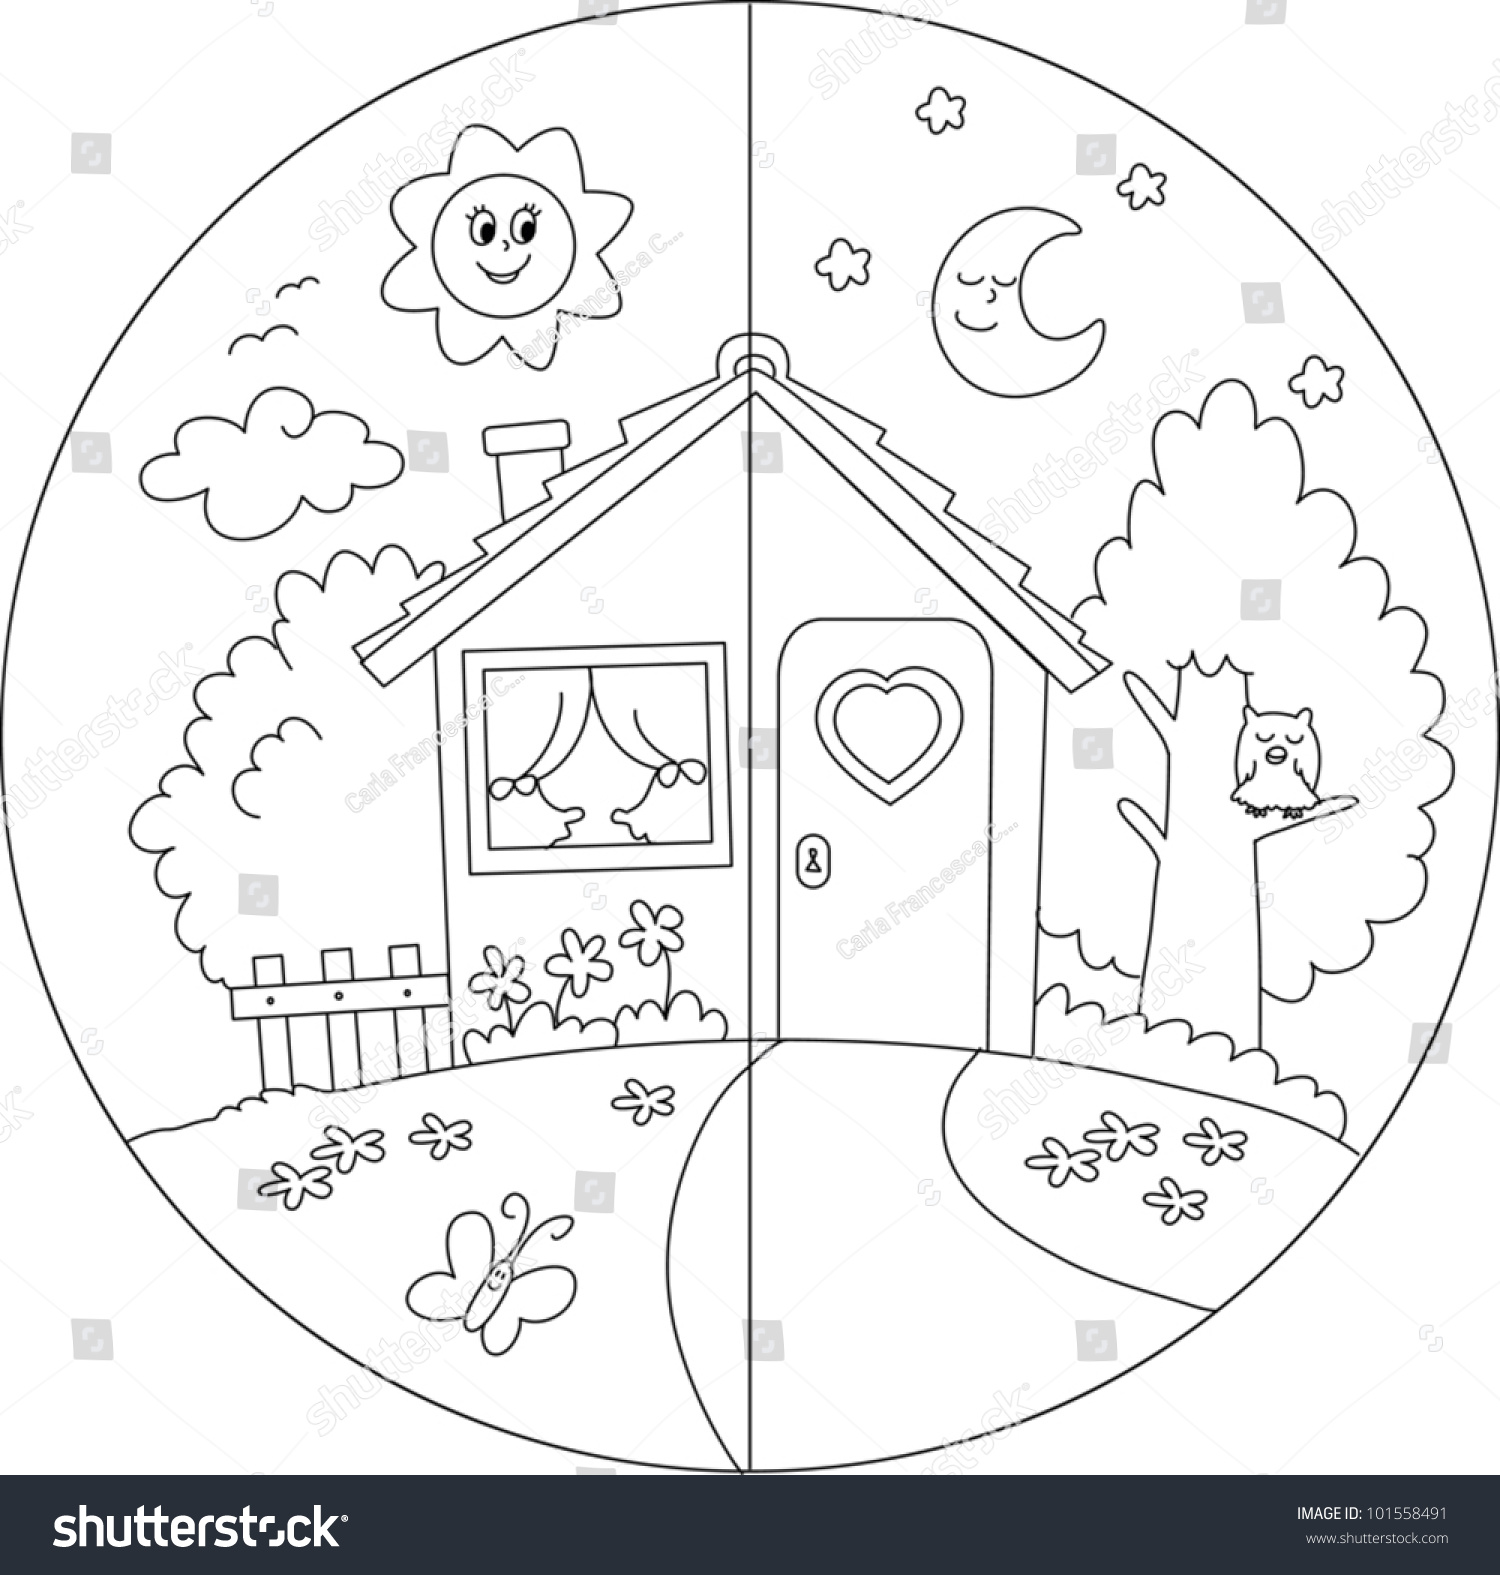 night day view cartoon country house stock vector 101558491 shutterstock. Black Bedroom Furniture Sets. Home Design Ideas